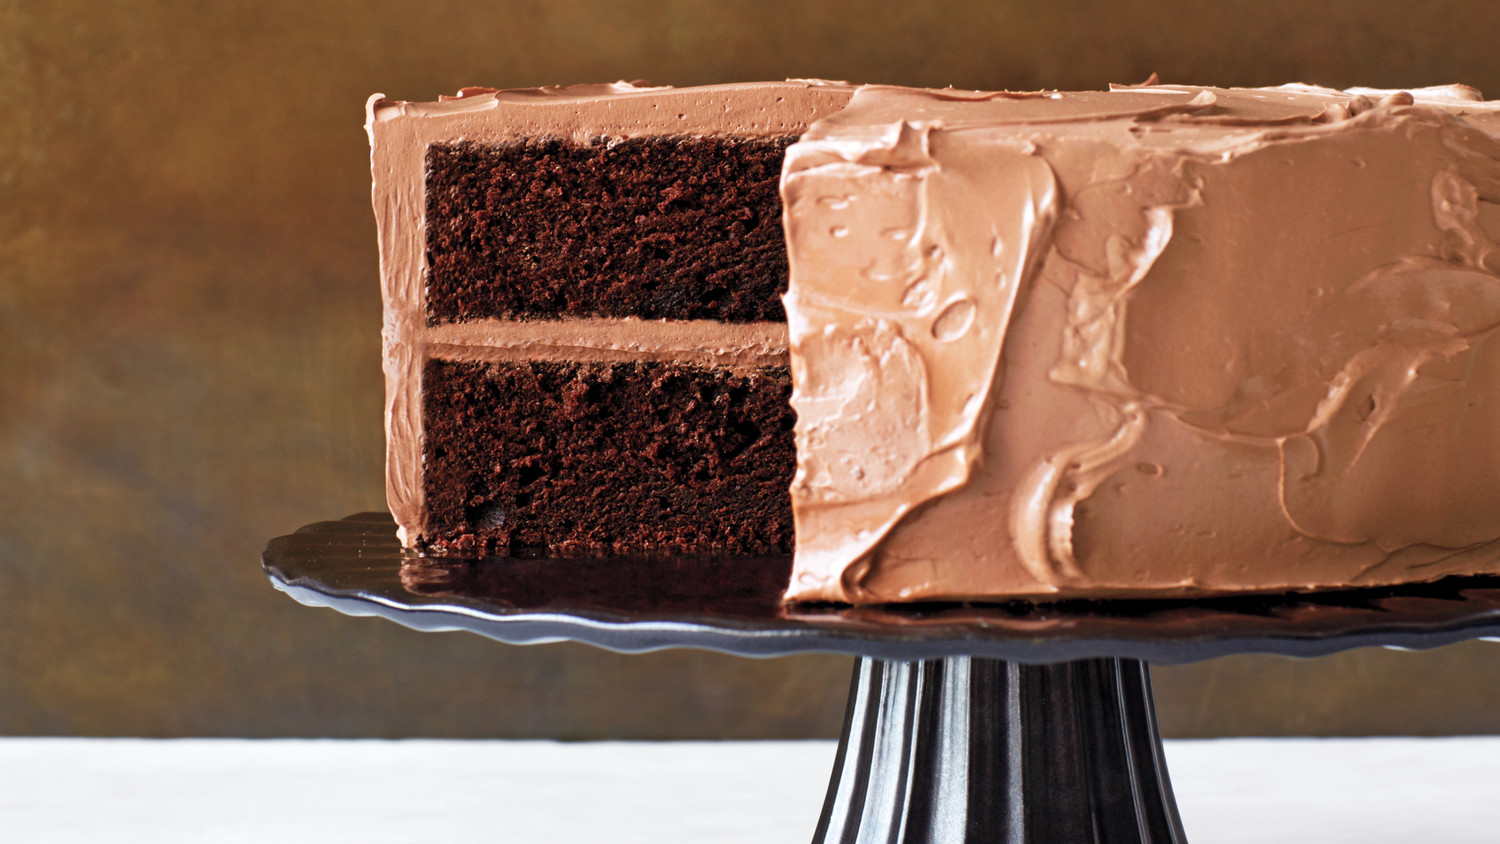 The Ultimate Devil S Food Cake